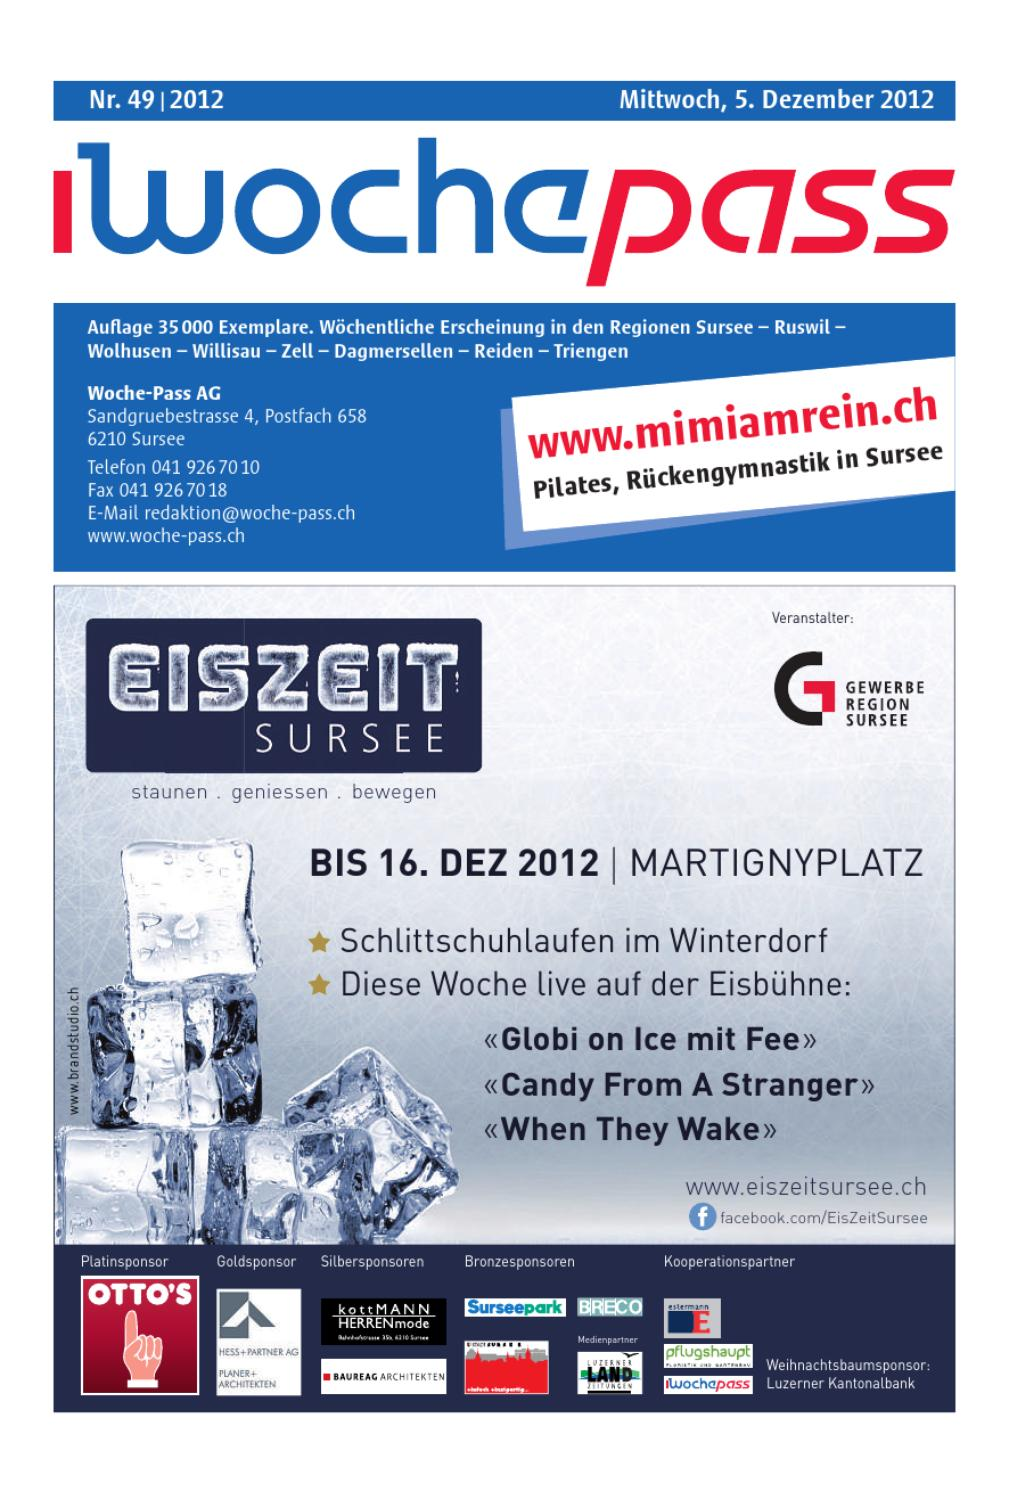 Woche-Pass | KW49 | 5. Dezember 2012 by Woche-Pass AG - issuu